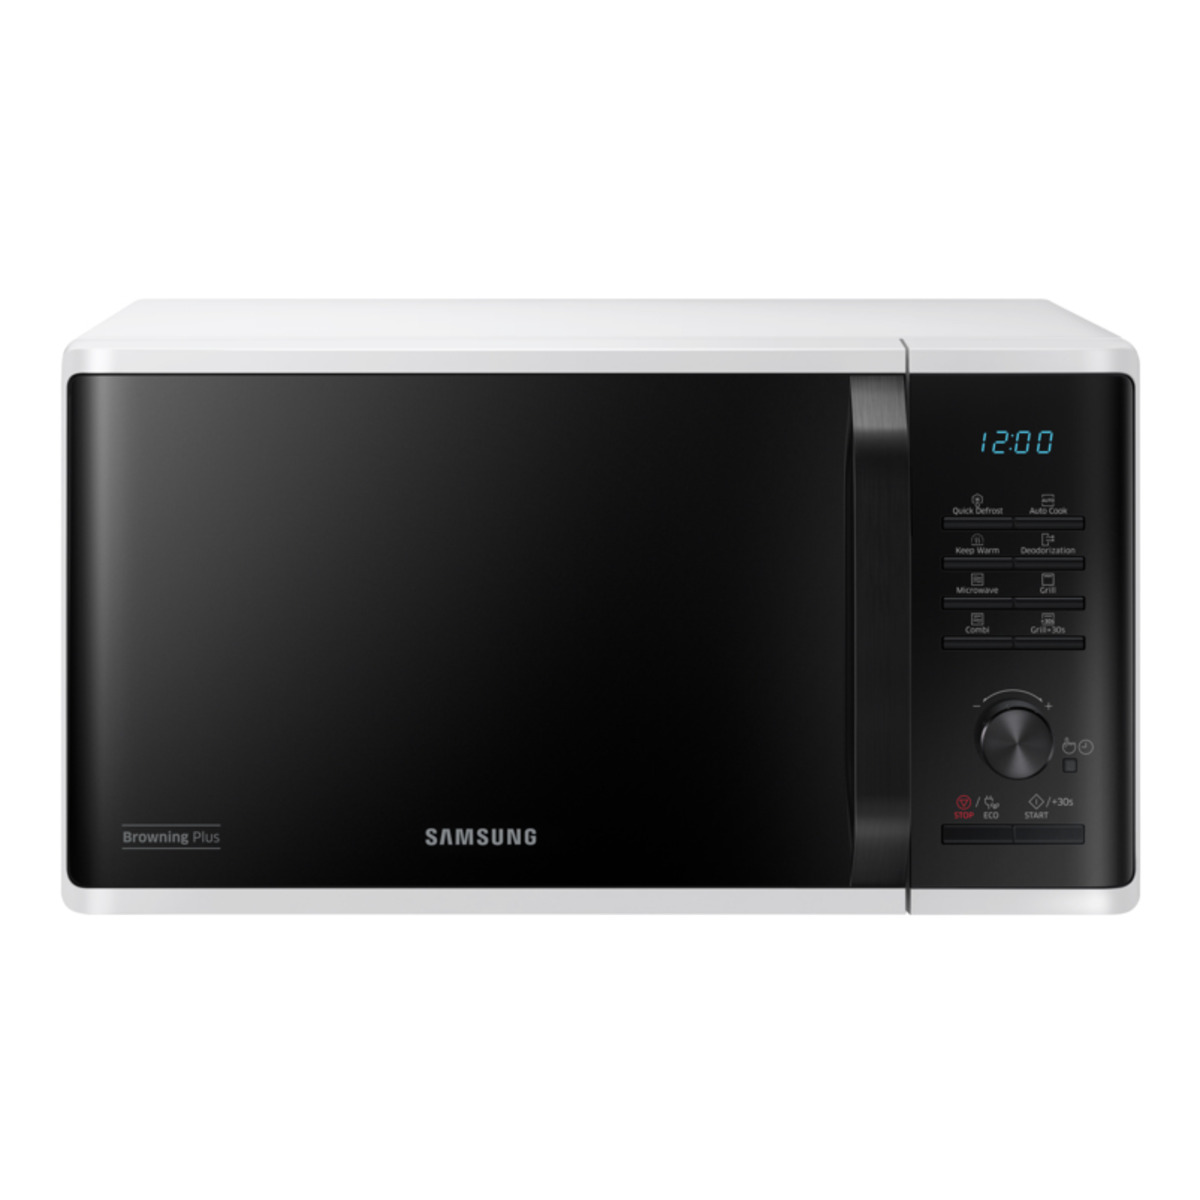 8806088361864-samsung-mg23k3515aw-forno-a-microonde-superficie-piana-microonde-con-grill-23-l-800-w-bianco